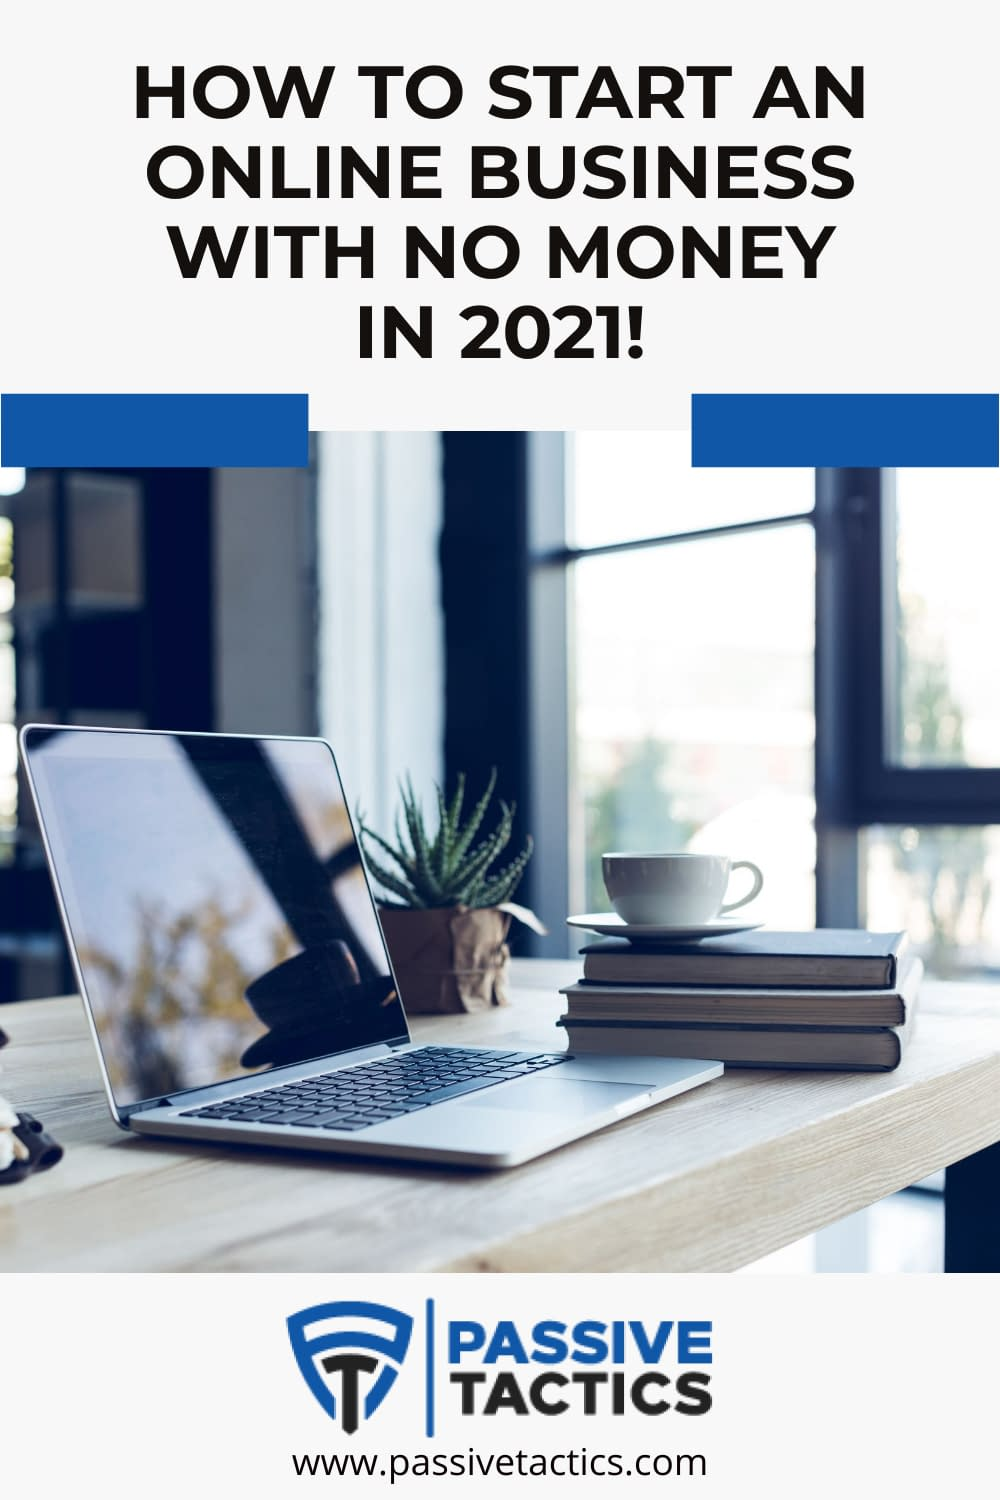 How To Start A Business Online With No Money In 2021!